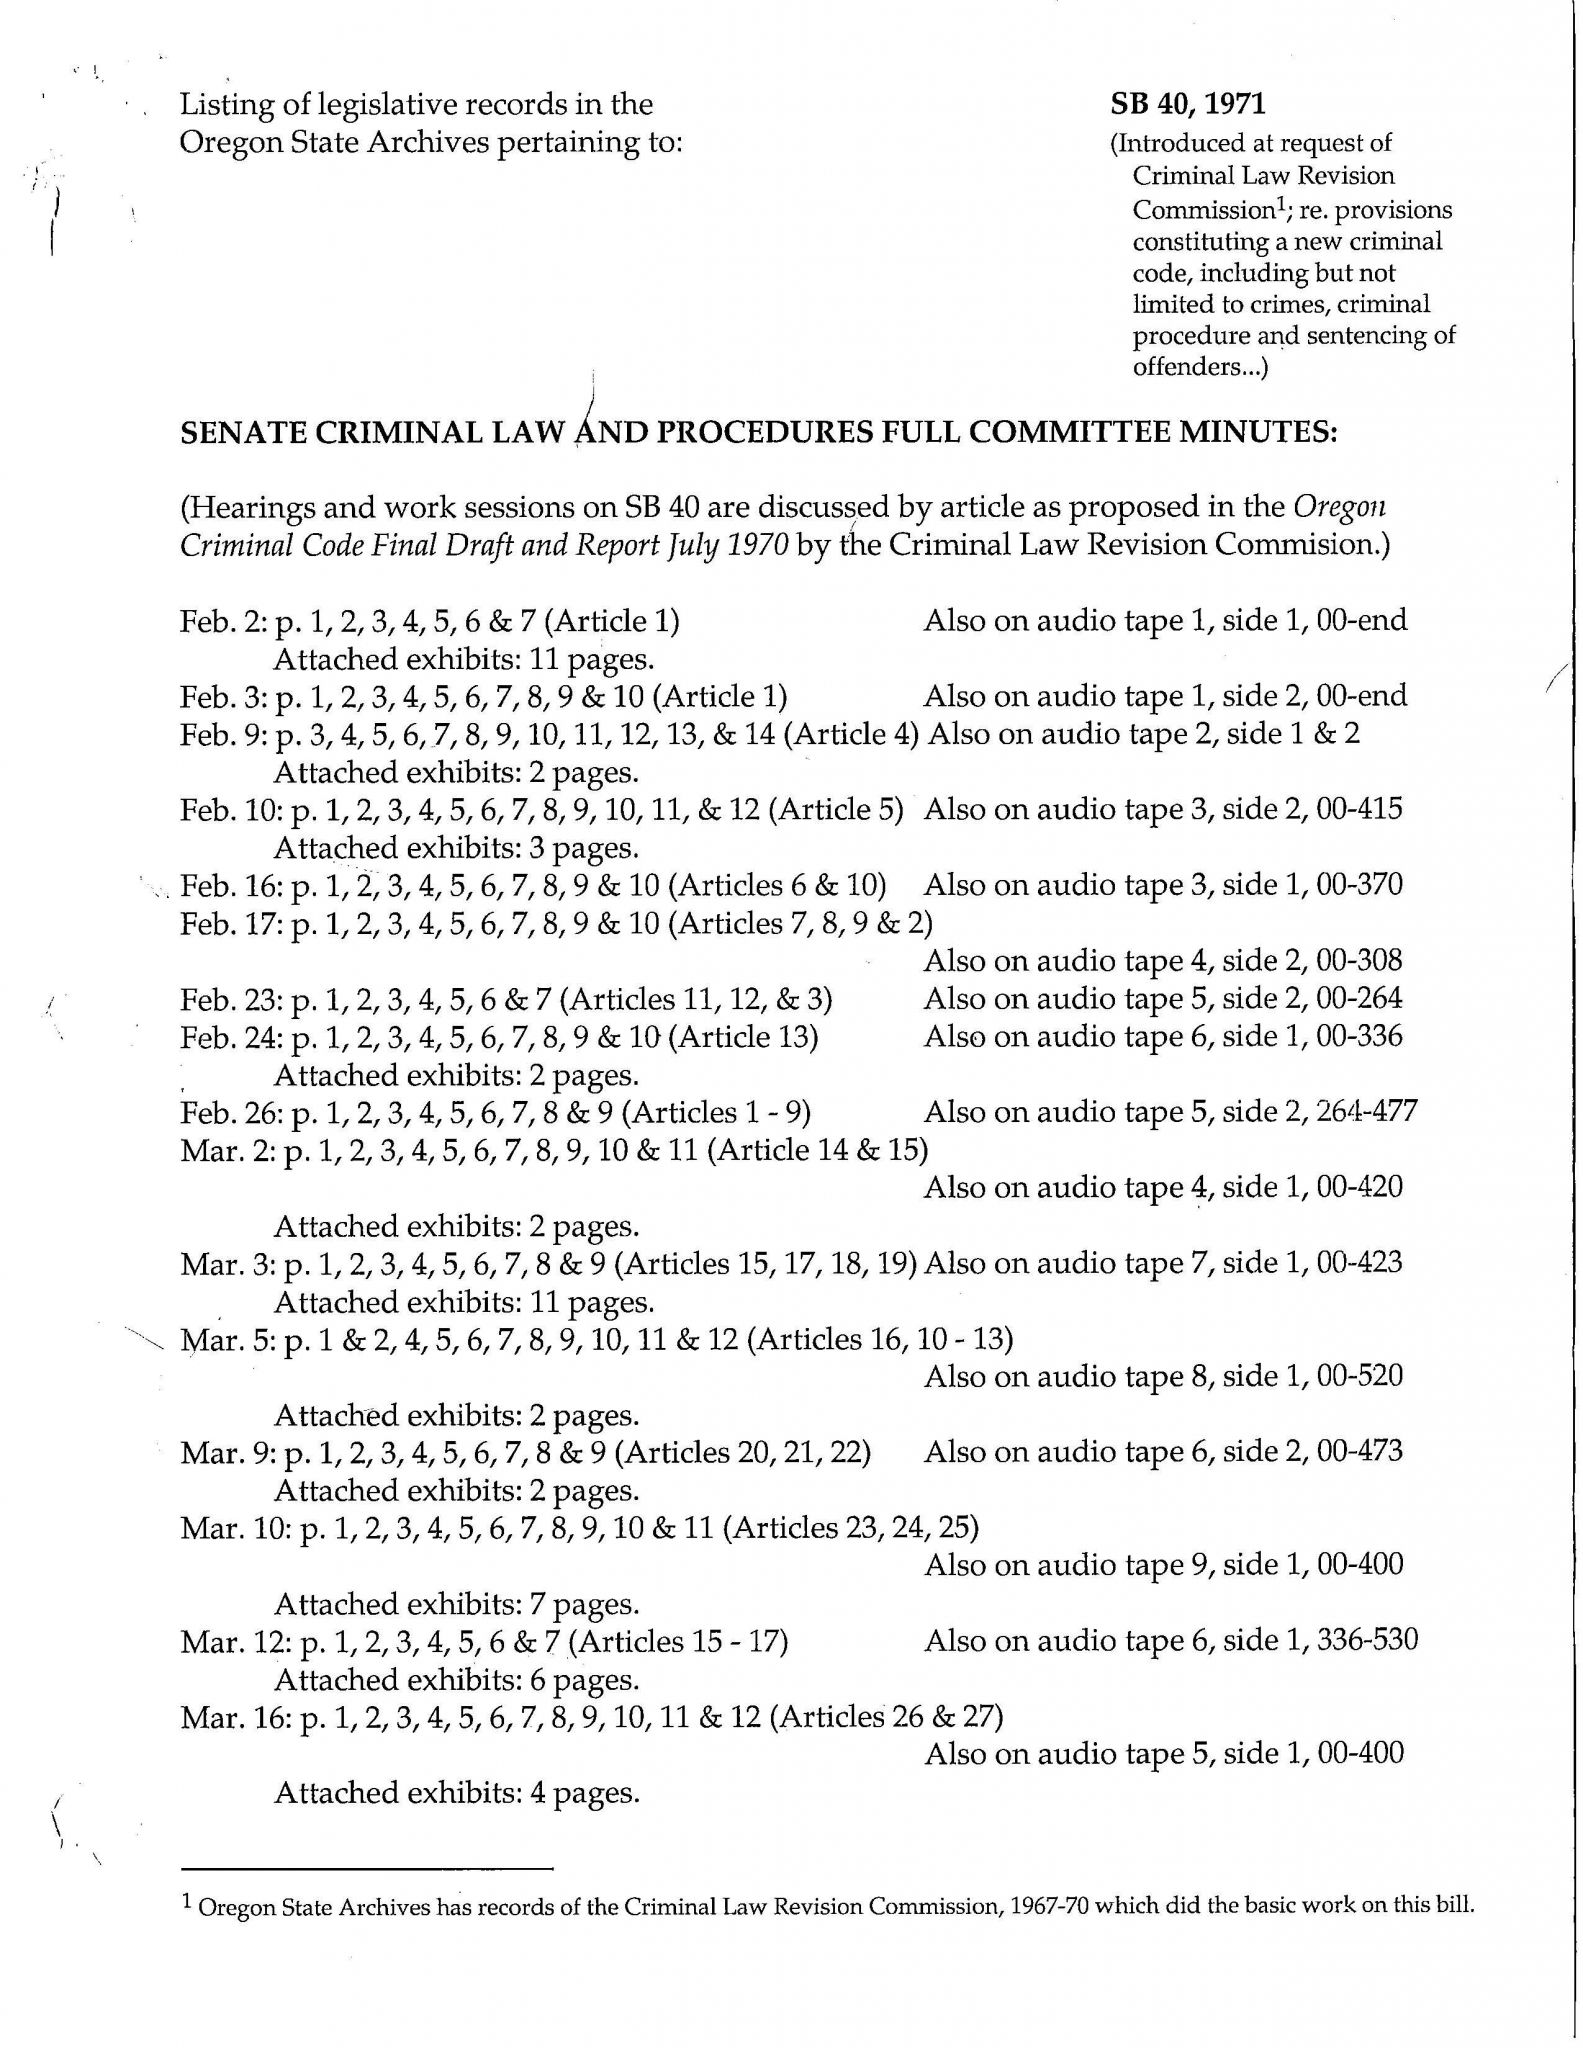 Air Force Legal Assistance Will Worksheet